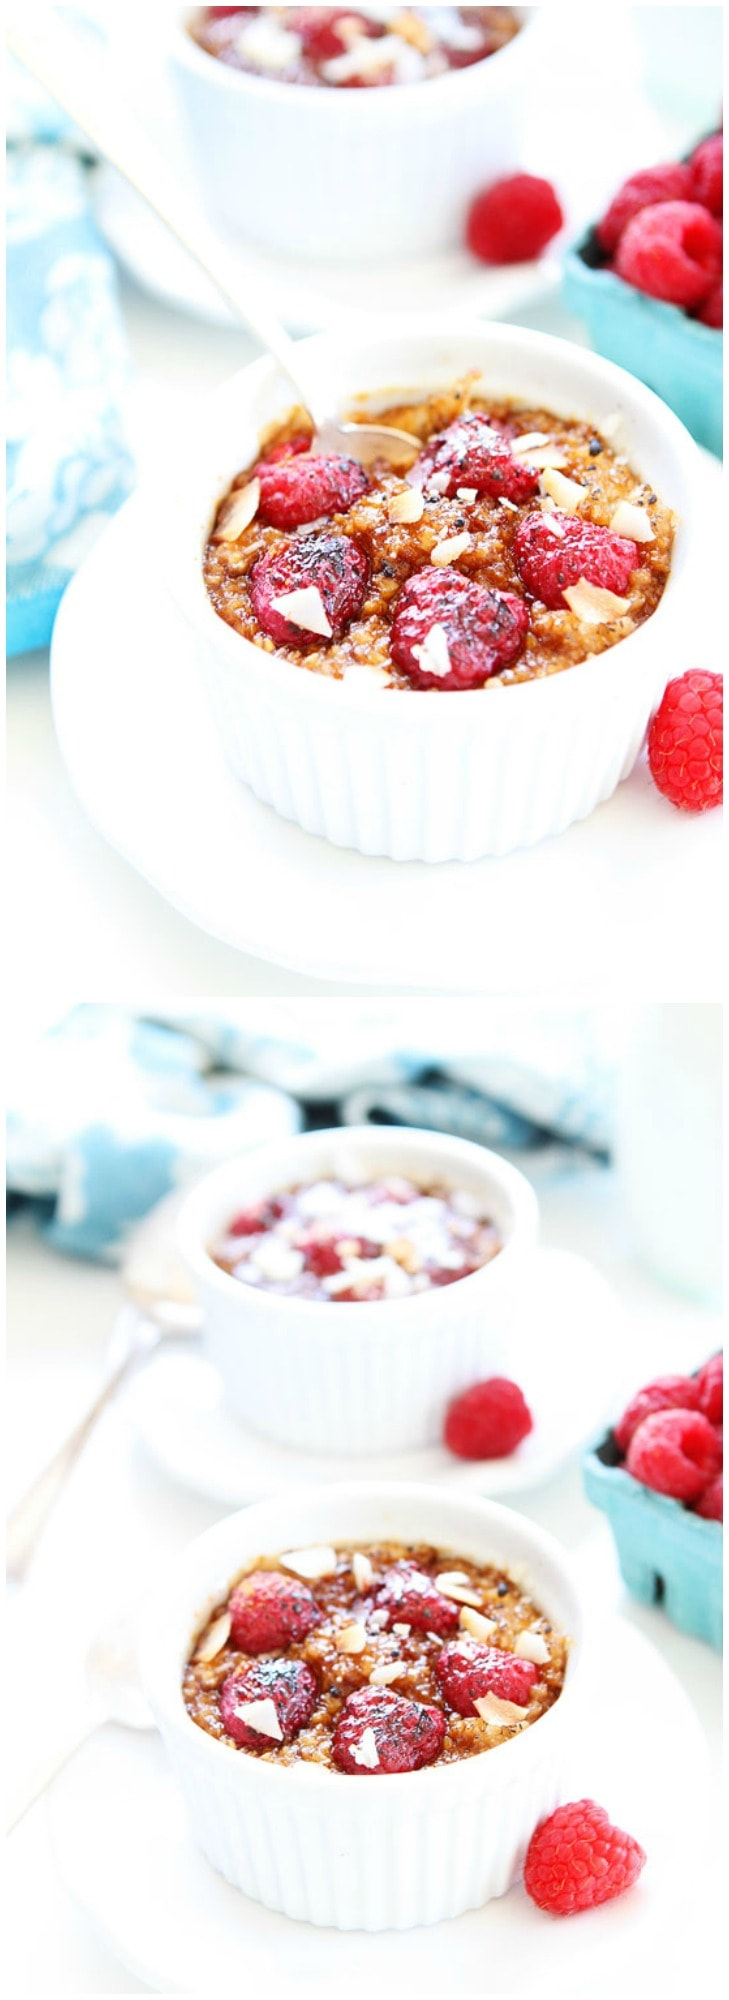 Raspberry Coconut Crème Brûlée Oatmeal Recipe on twopeasandtheirpod.com This simple oatmeal recipe will remind you of your favorite dessert!